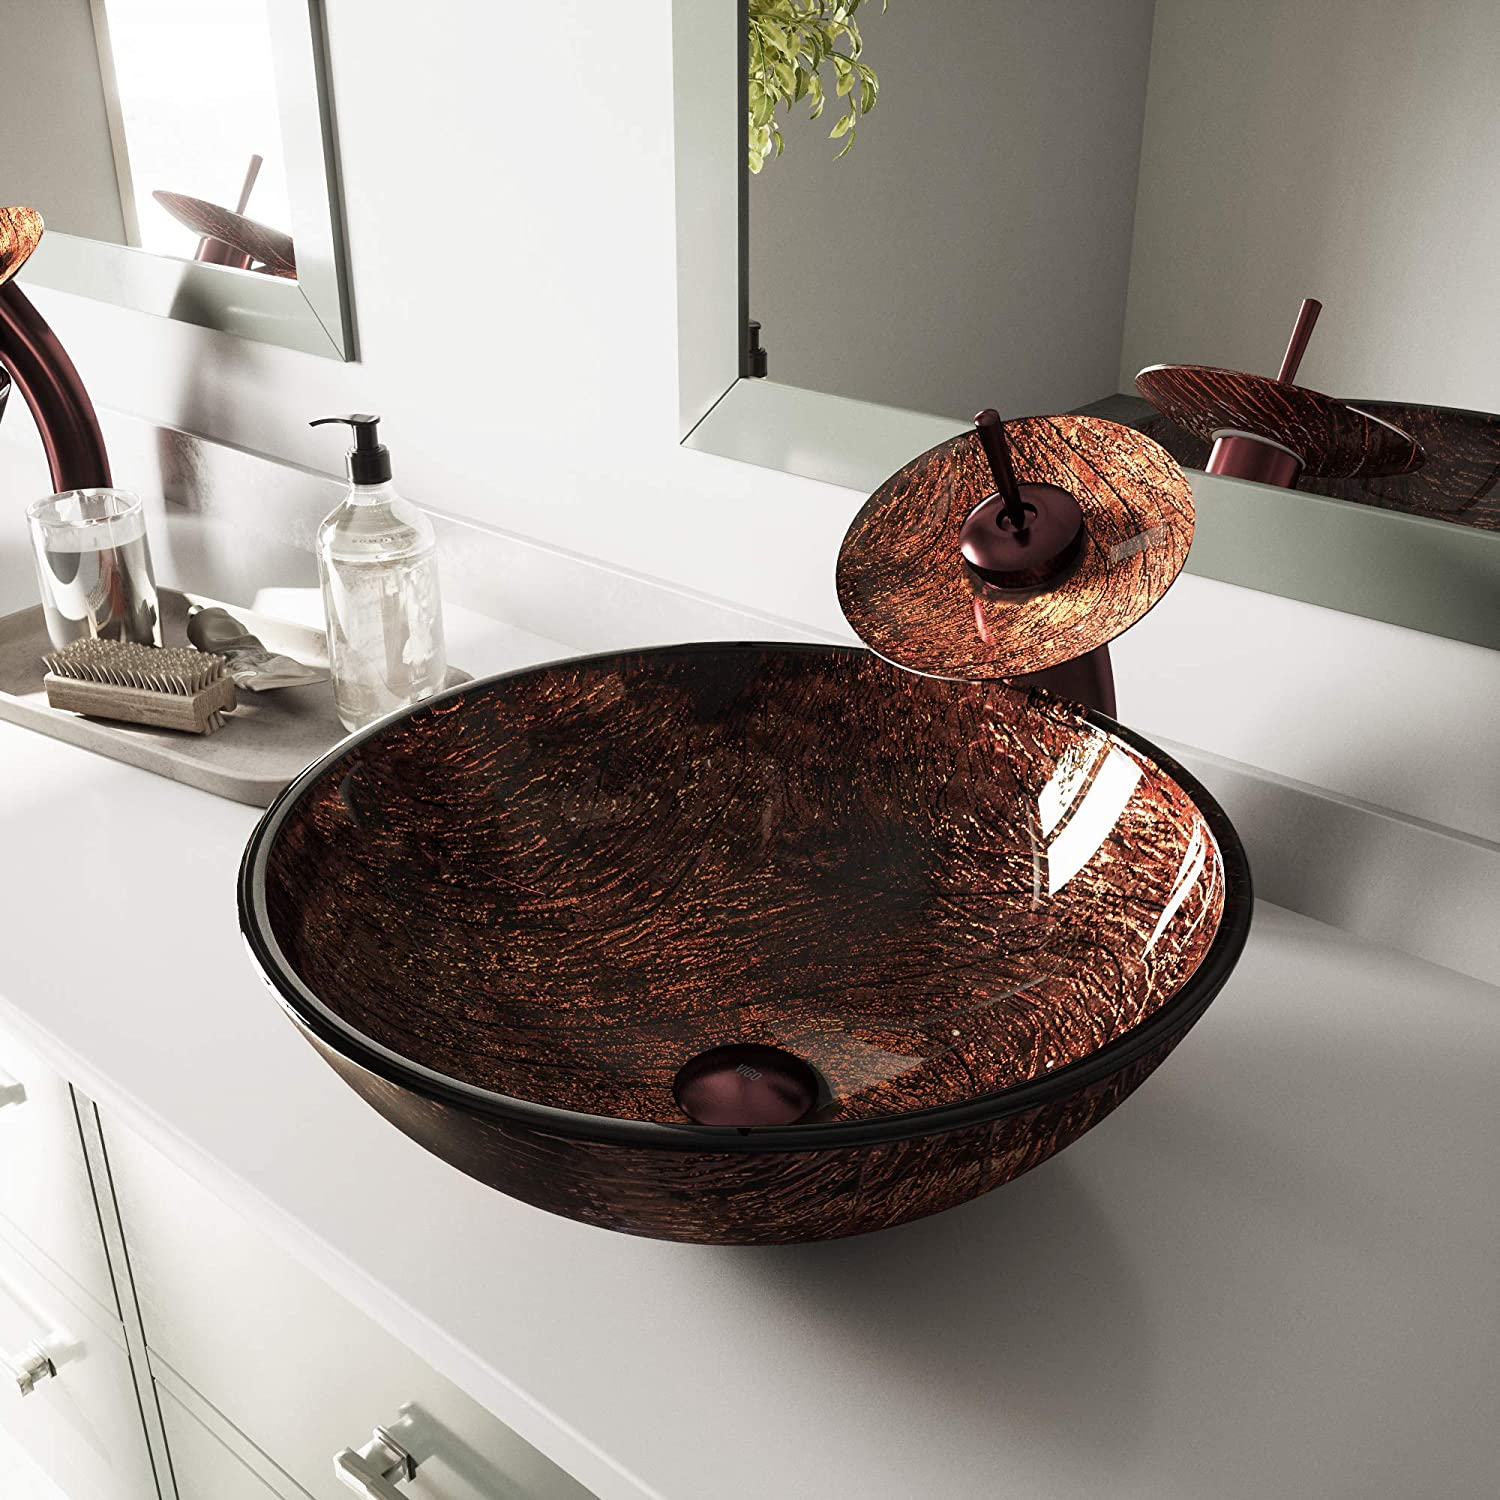 VIGO Kenyan Twilight Glass Vessel Bathroom Sink and Waterfall Faucet with Pop Up, Oil Rubbed Bronze